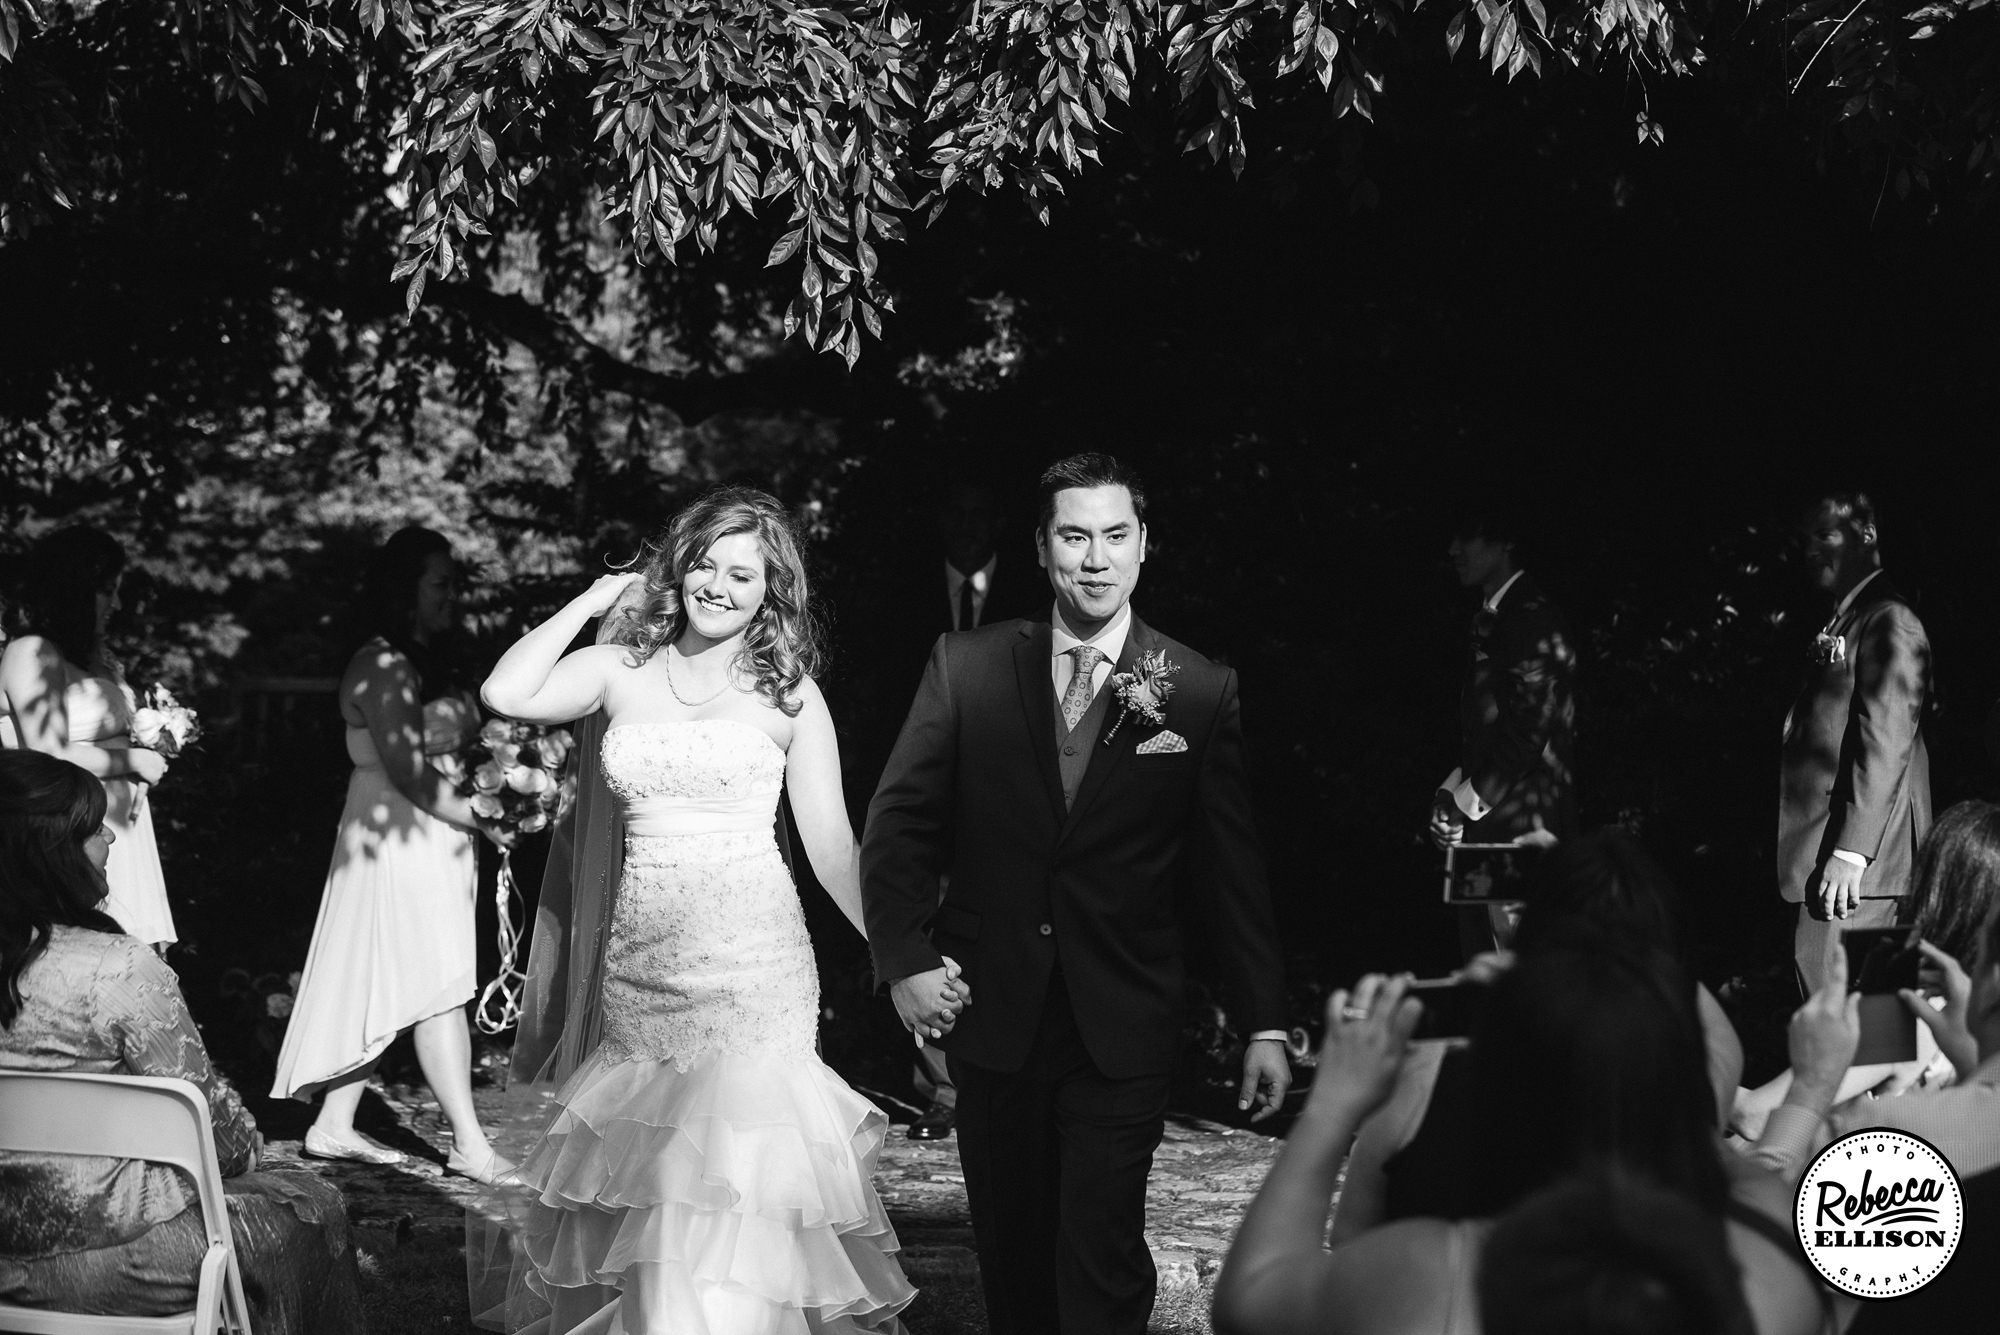 Bride and groom walk down the aisle after their summer Seattle wedding photographed by Rebecca Ellison Photography